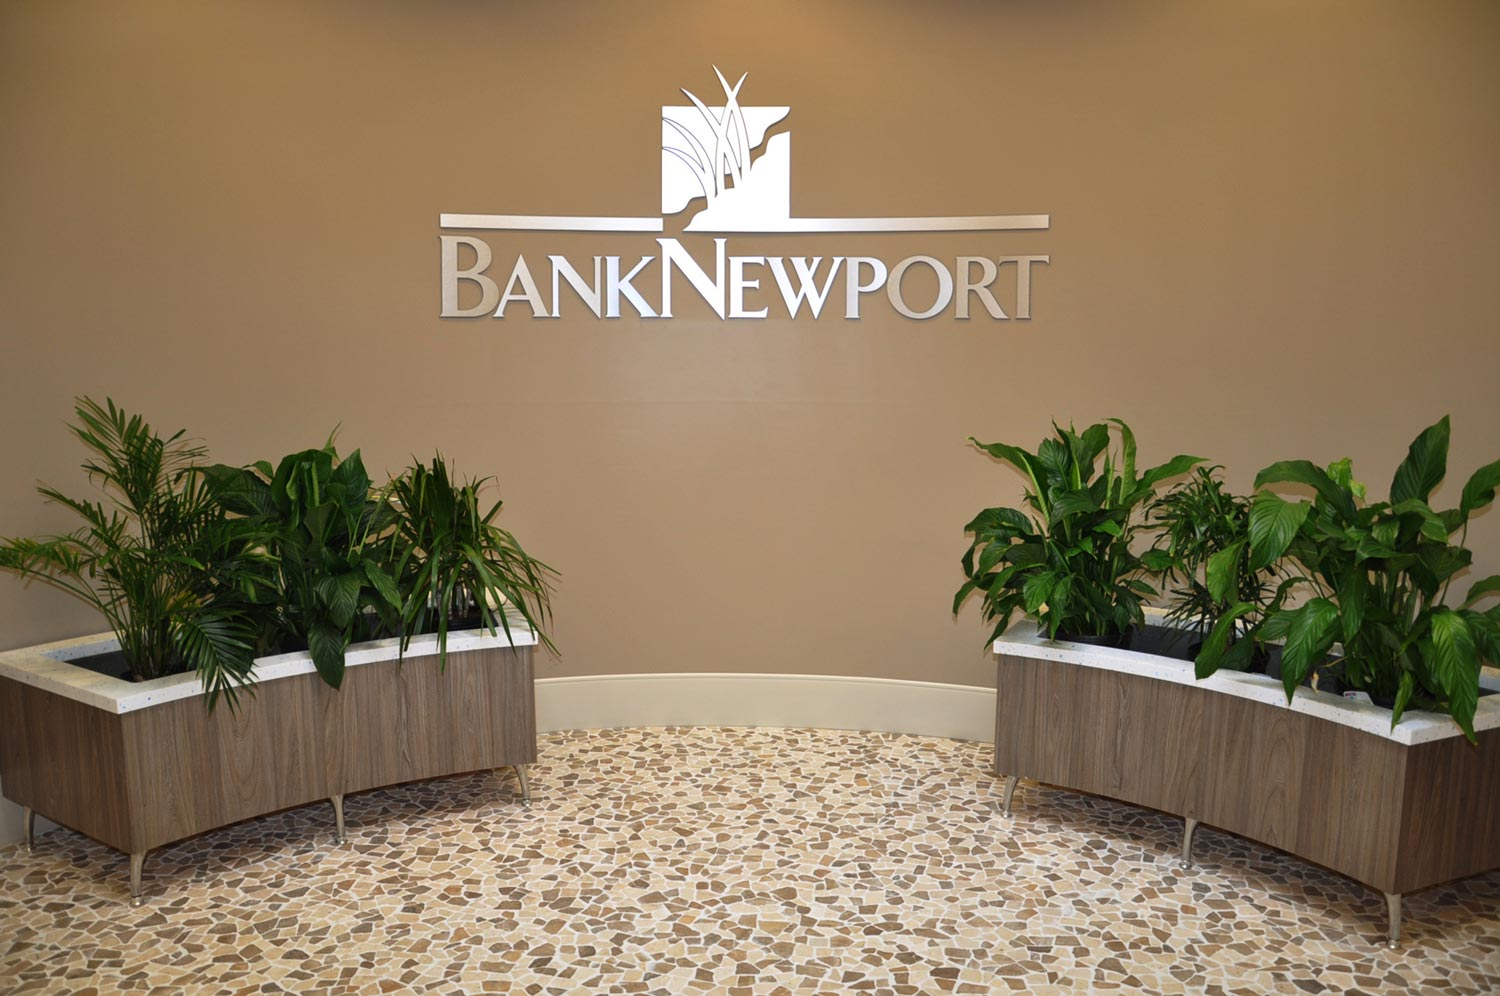 Bank Newport Corporate Headquarters